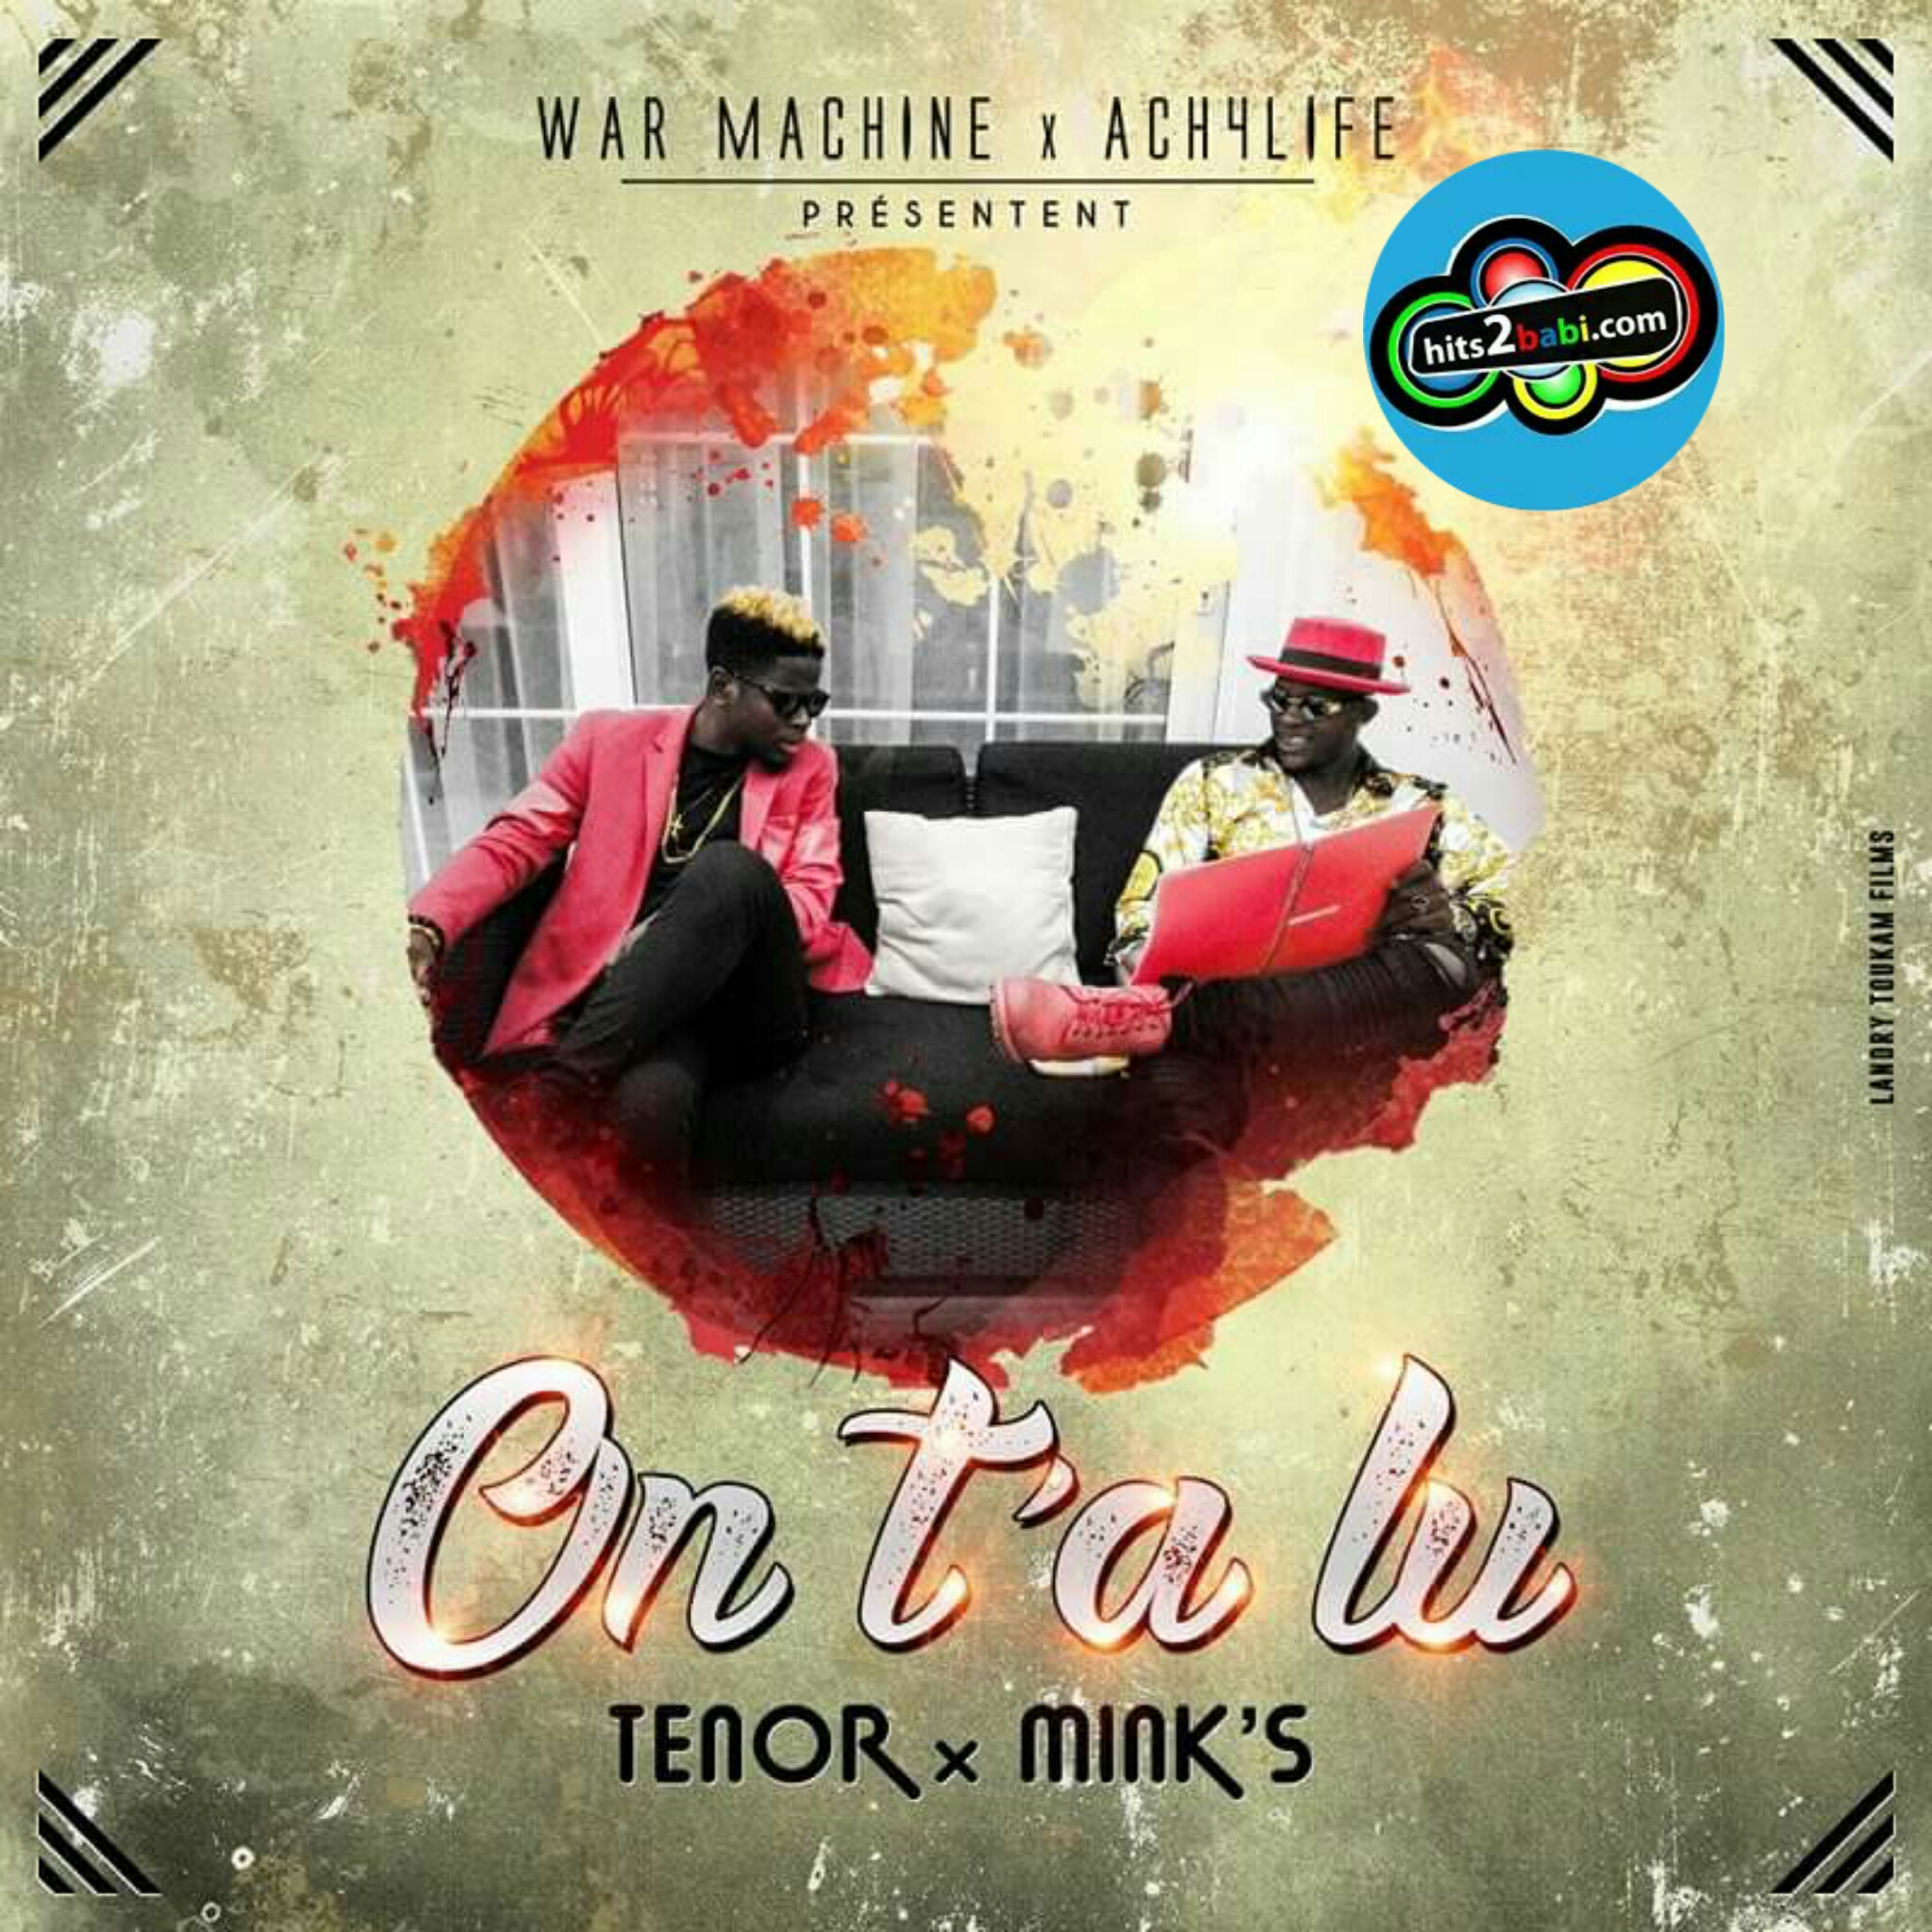 TENOR FEAT MINK'S - ON T'AS LU